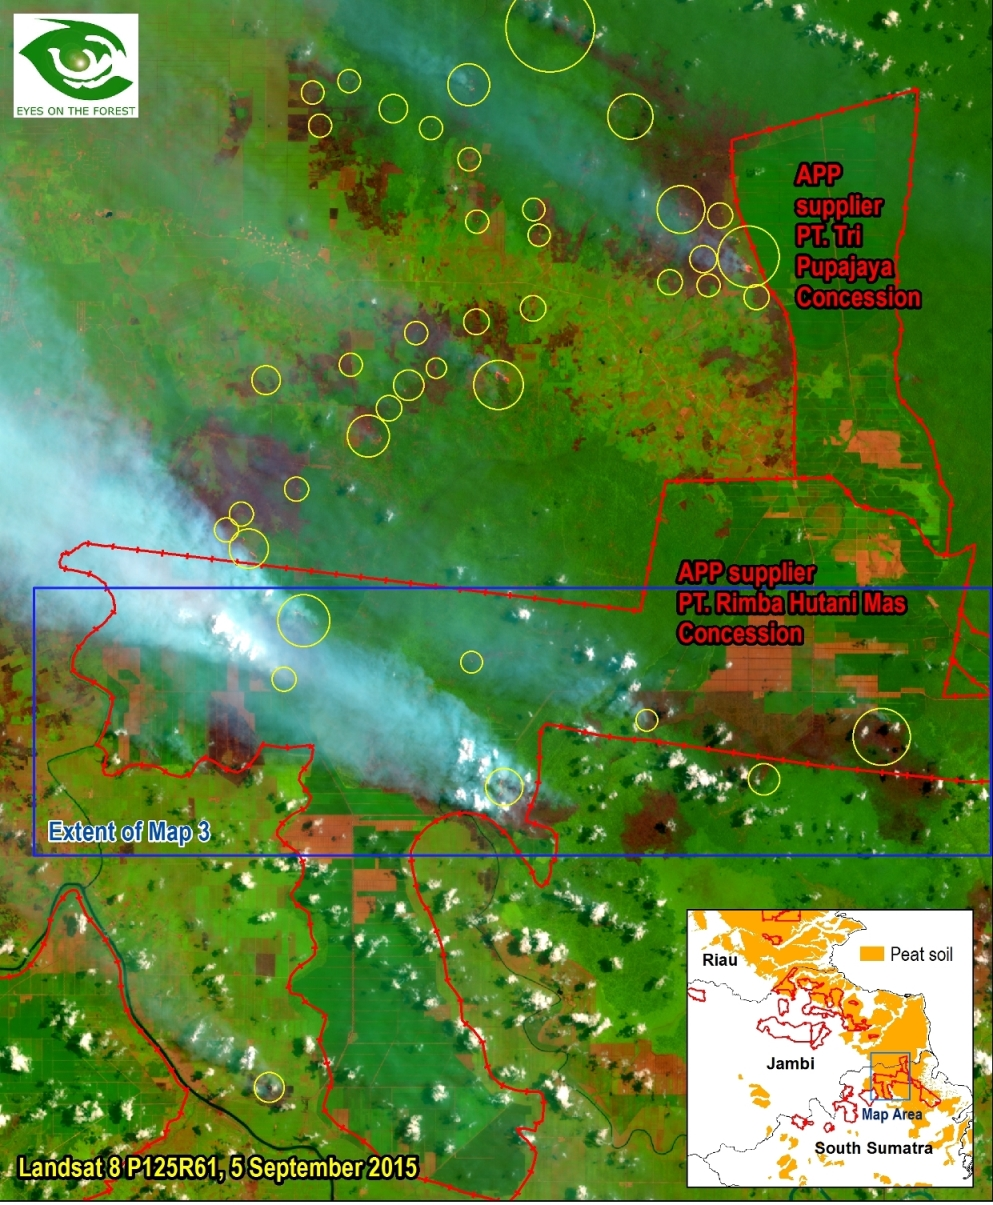 Map 1. Landsat 8 of 5 September 2015 shows some fires (inside yellow circles) and burned areas (dark red-brown) inside and outside APP supplier PT. Rimba Hutani Mas concession and fires getting close to another APP supplier, PT. Tri Pupajaya concession. The image also shows smokes from fire.